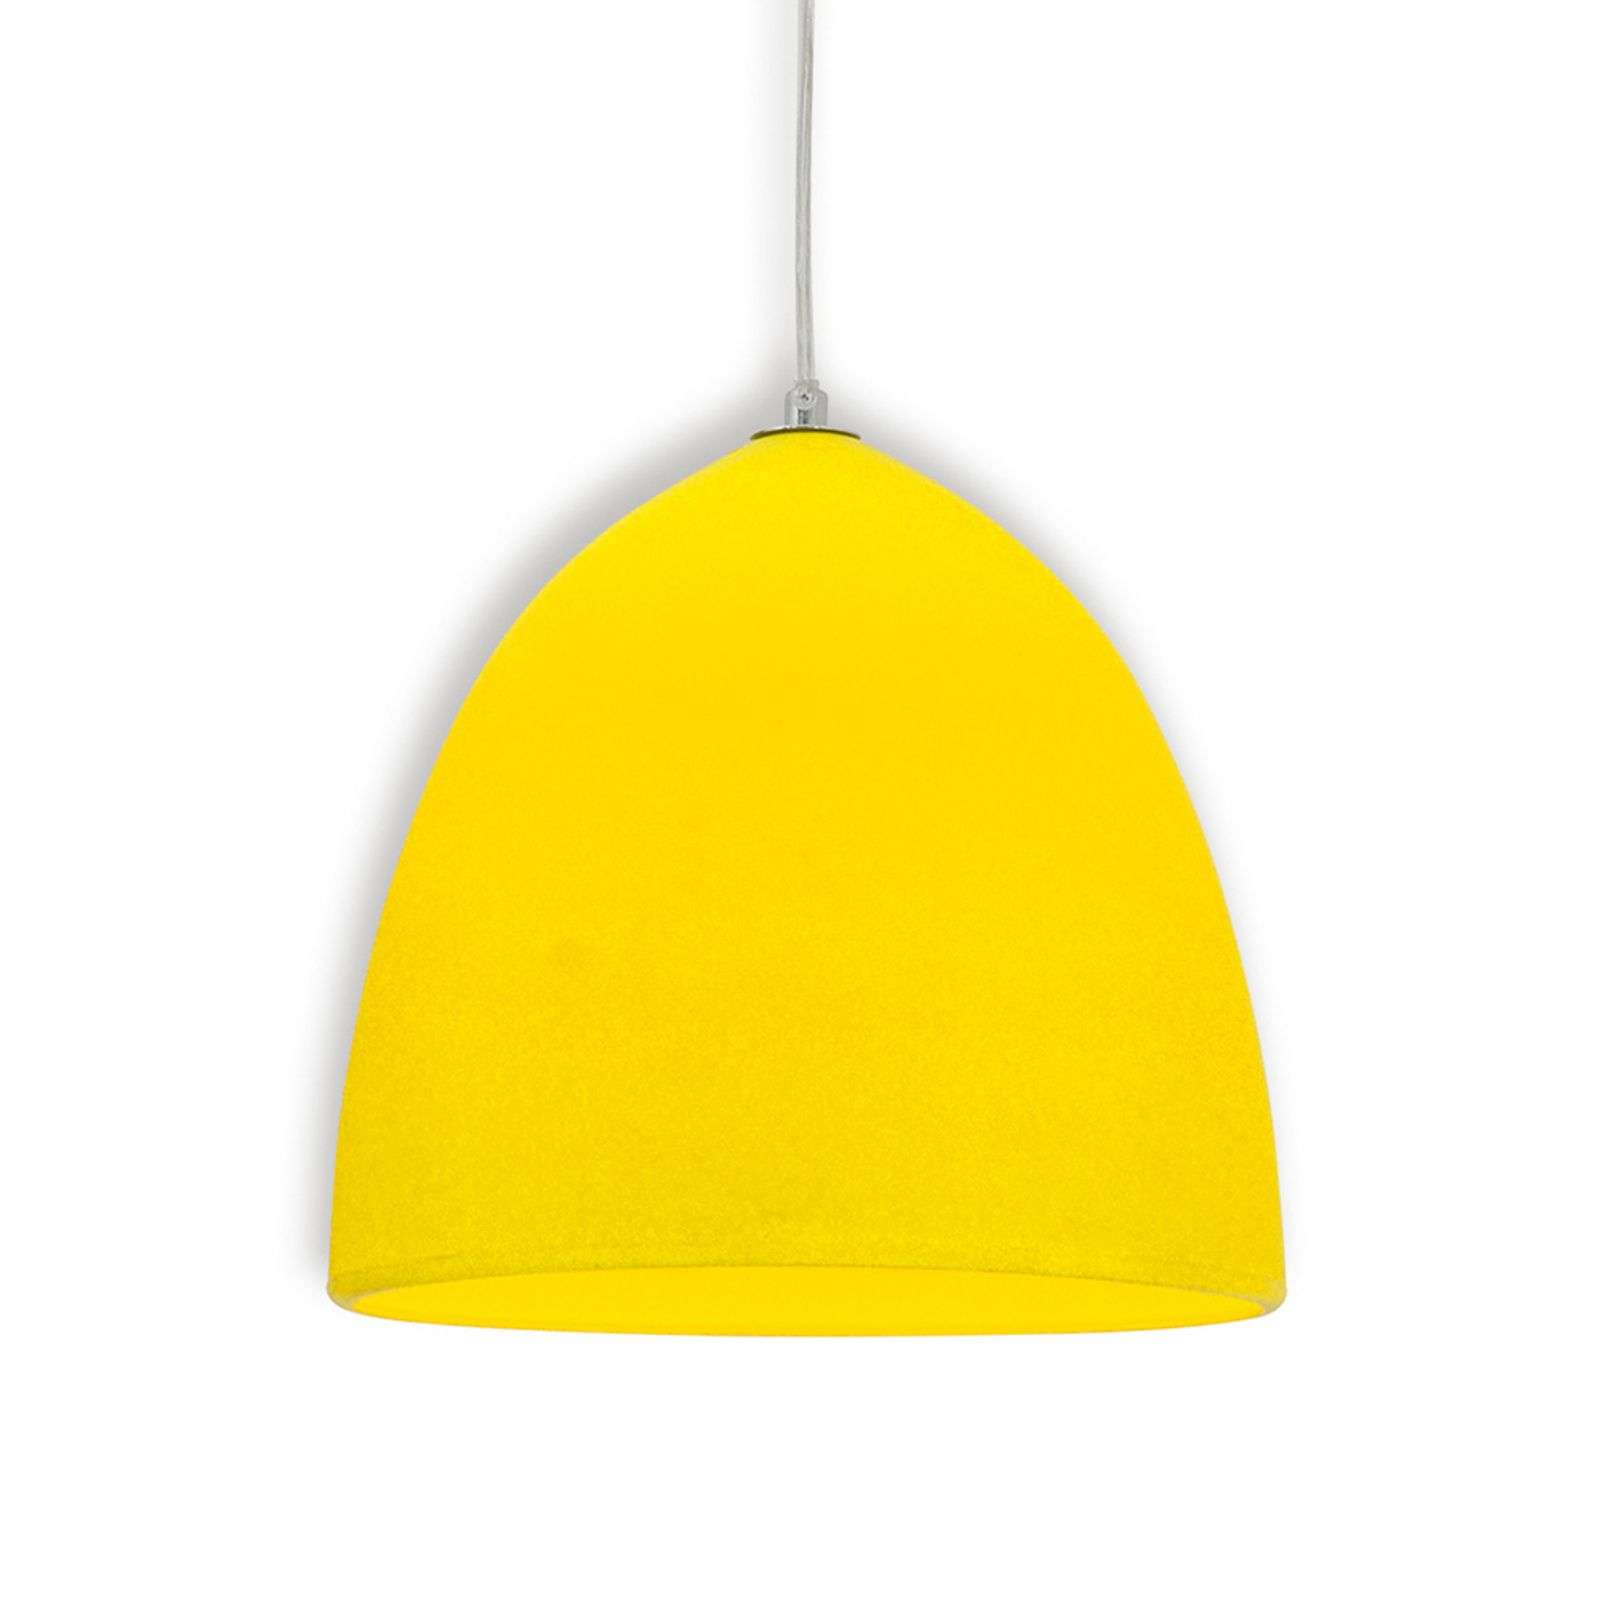 Suspension en silicone Fancy, jaune